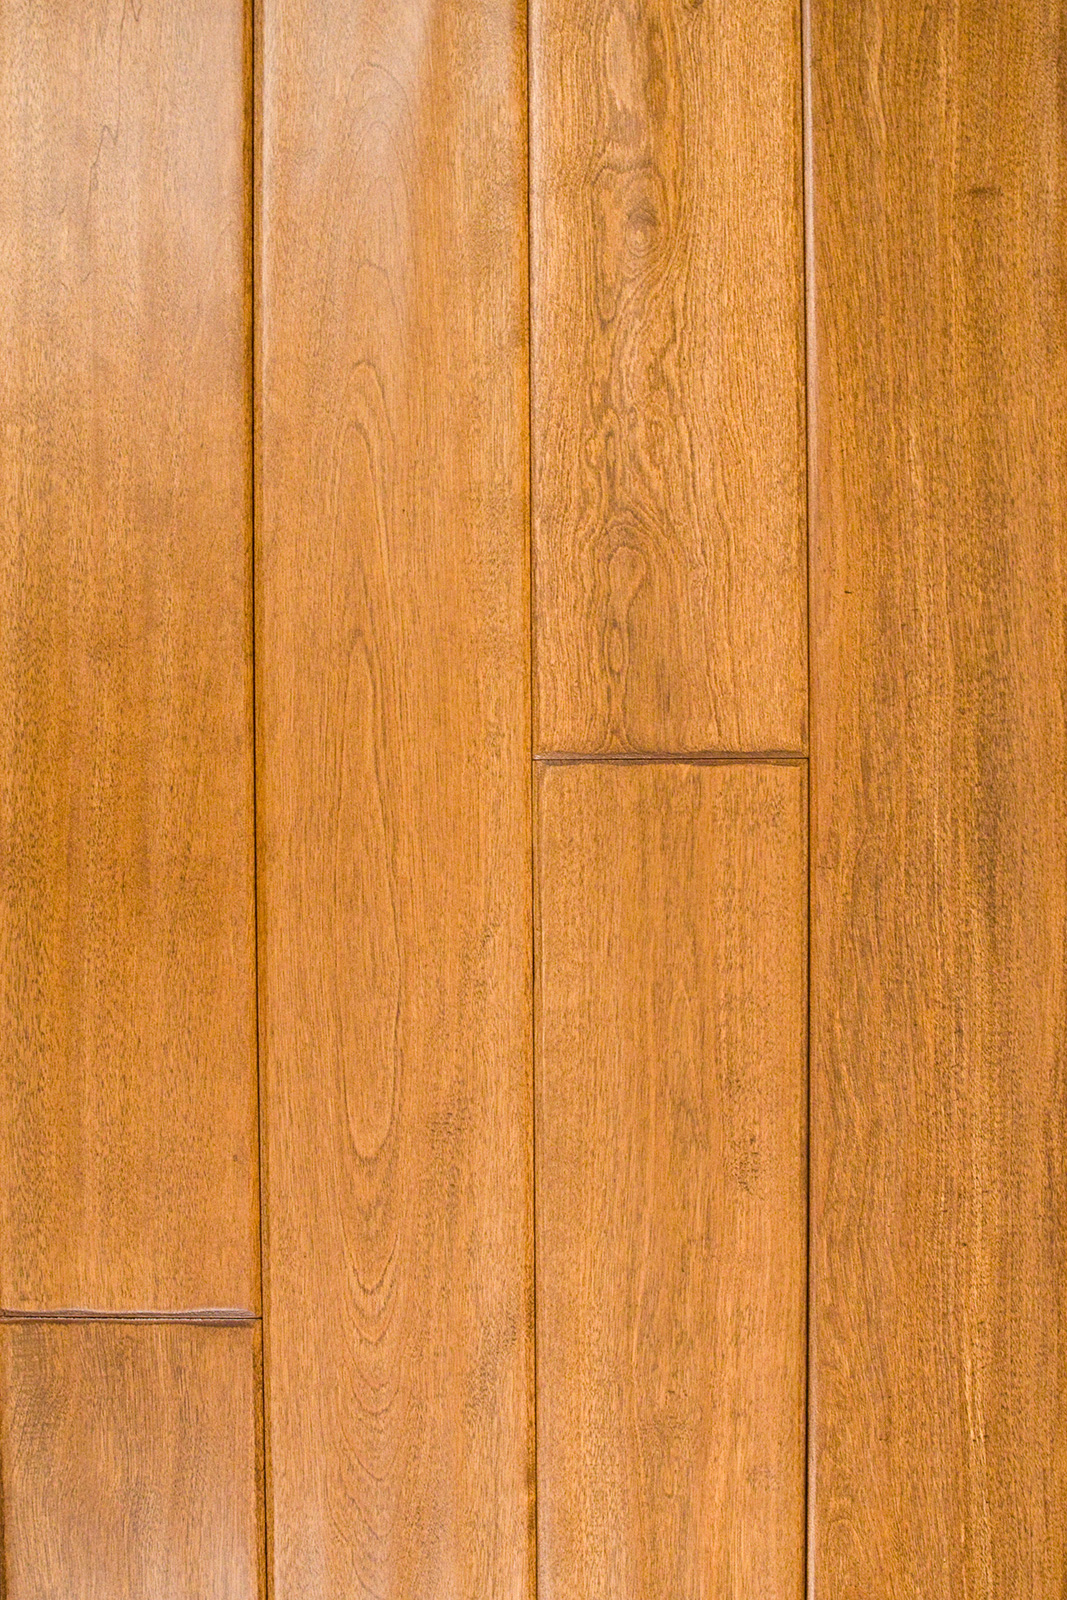 Made With Hardwood Solids With Cherry Veneers And Walnut: Hardwood Flooring Made Affordable